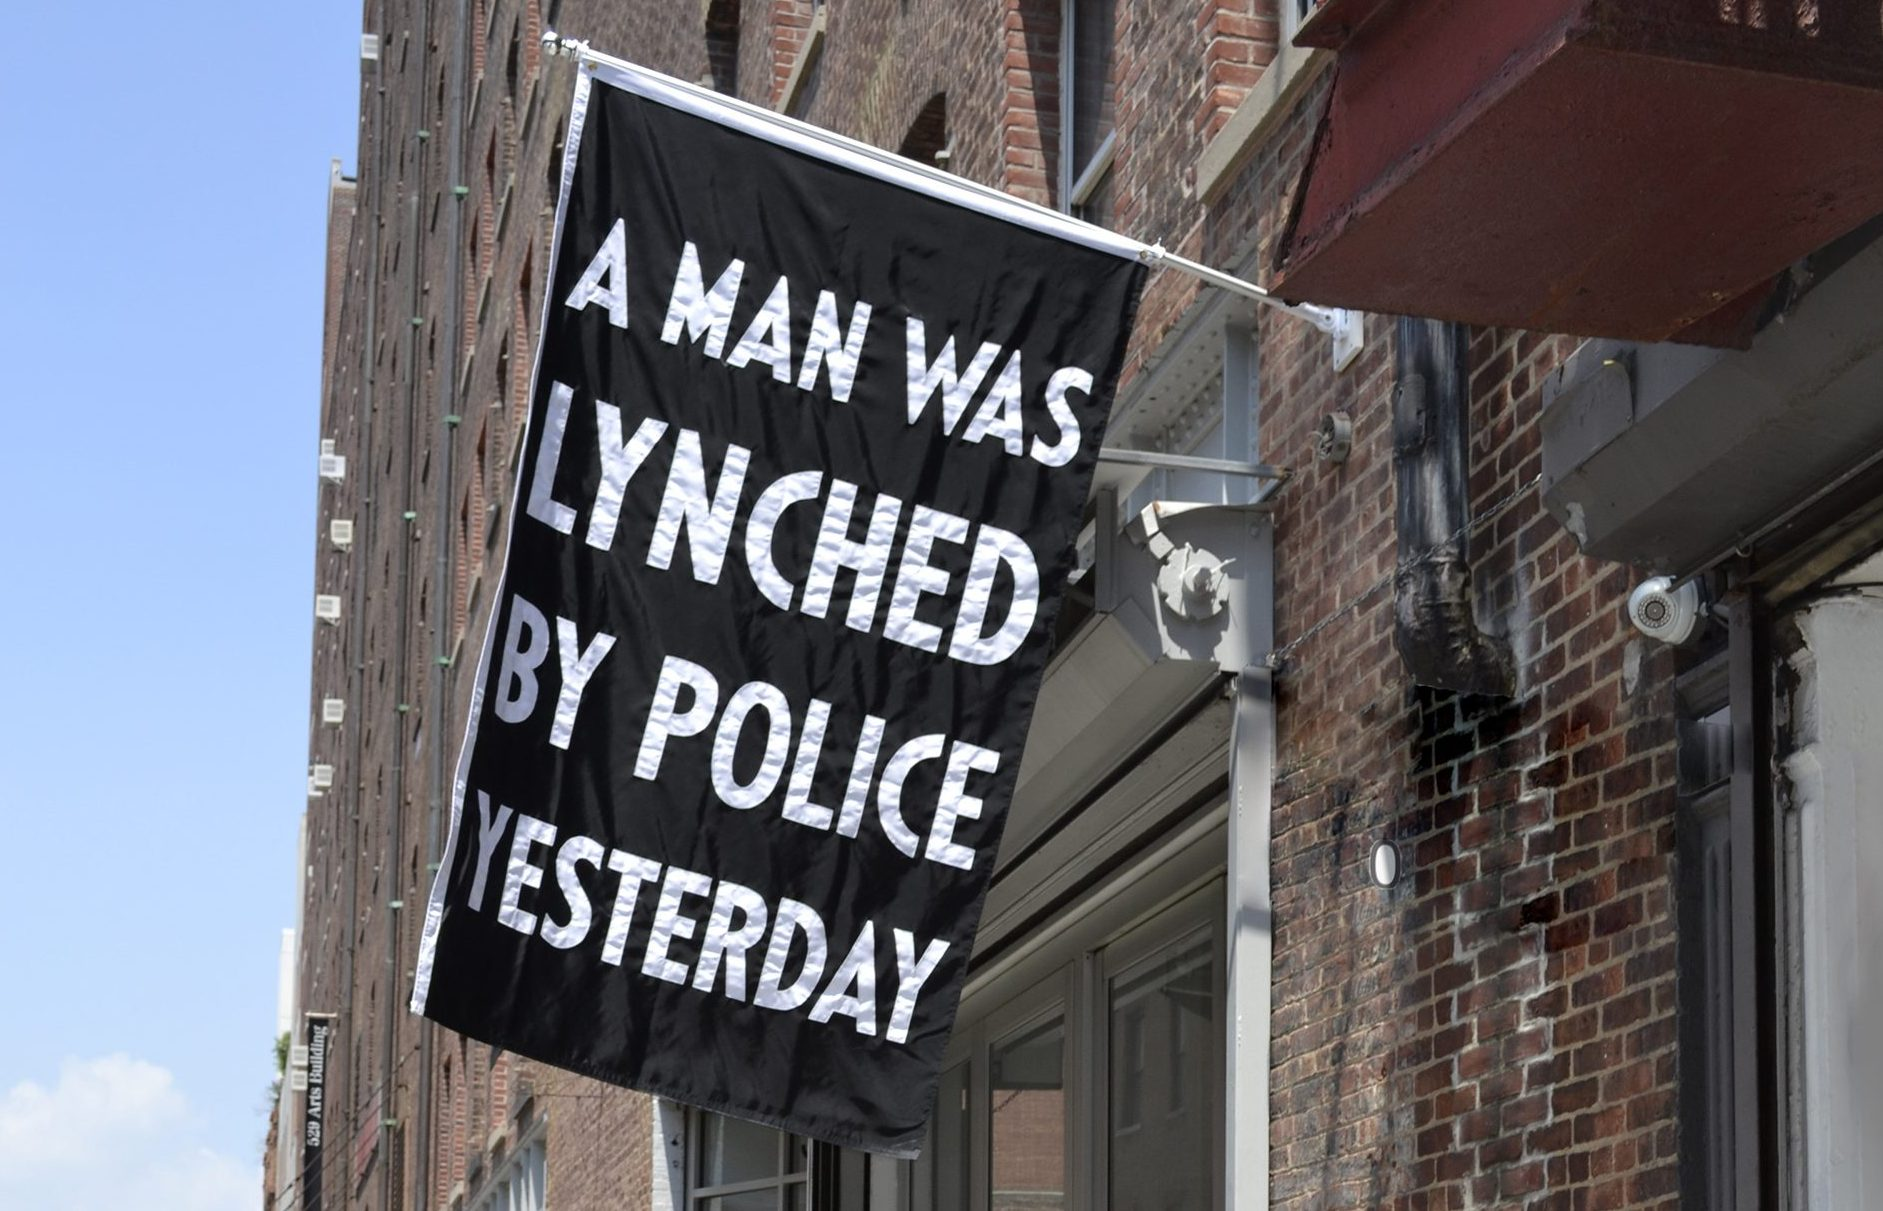 A-Man-Was-Lynched-shainman-